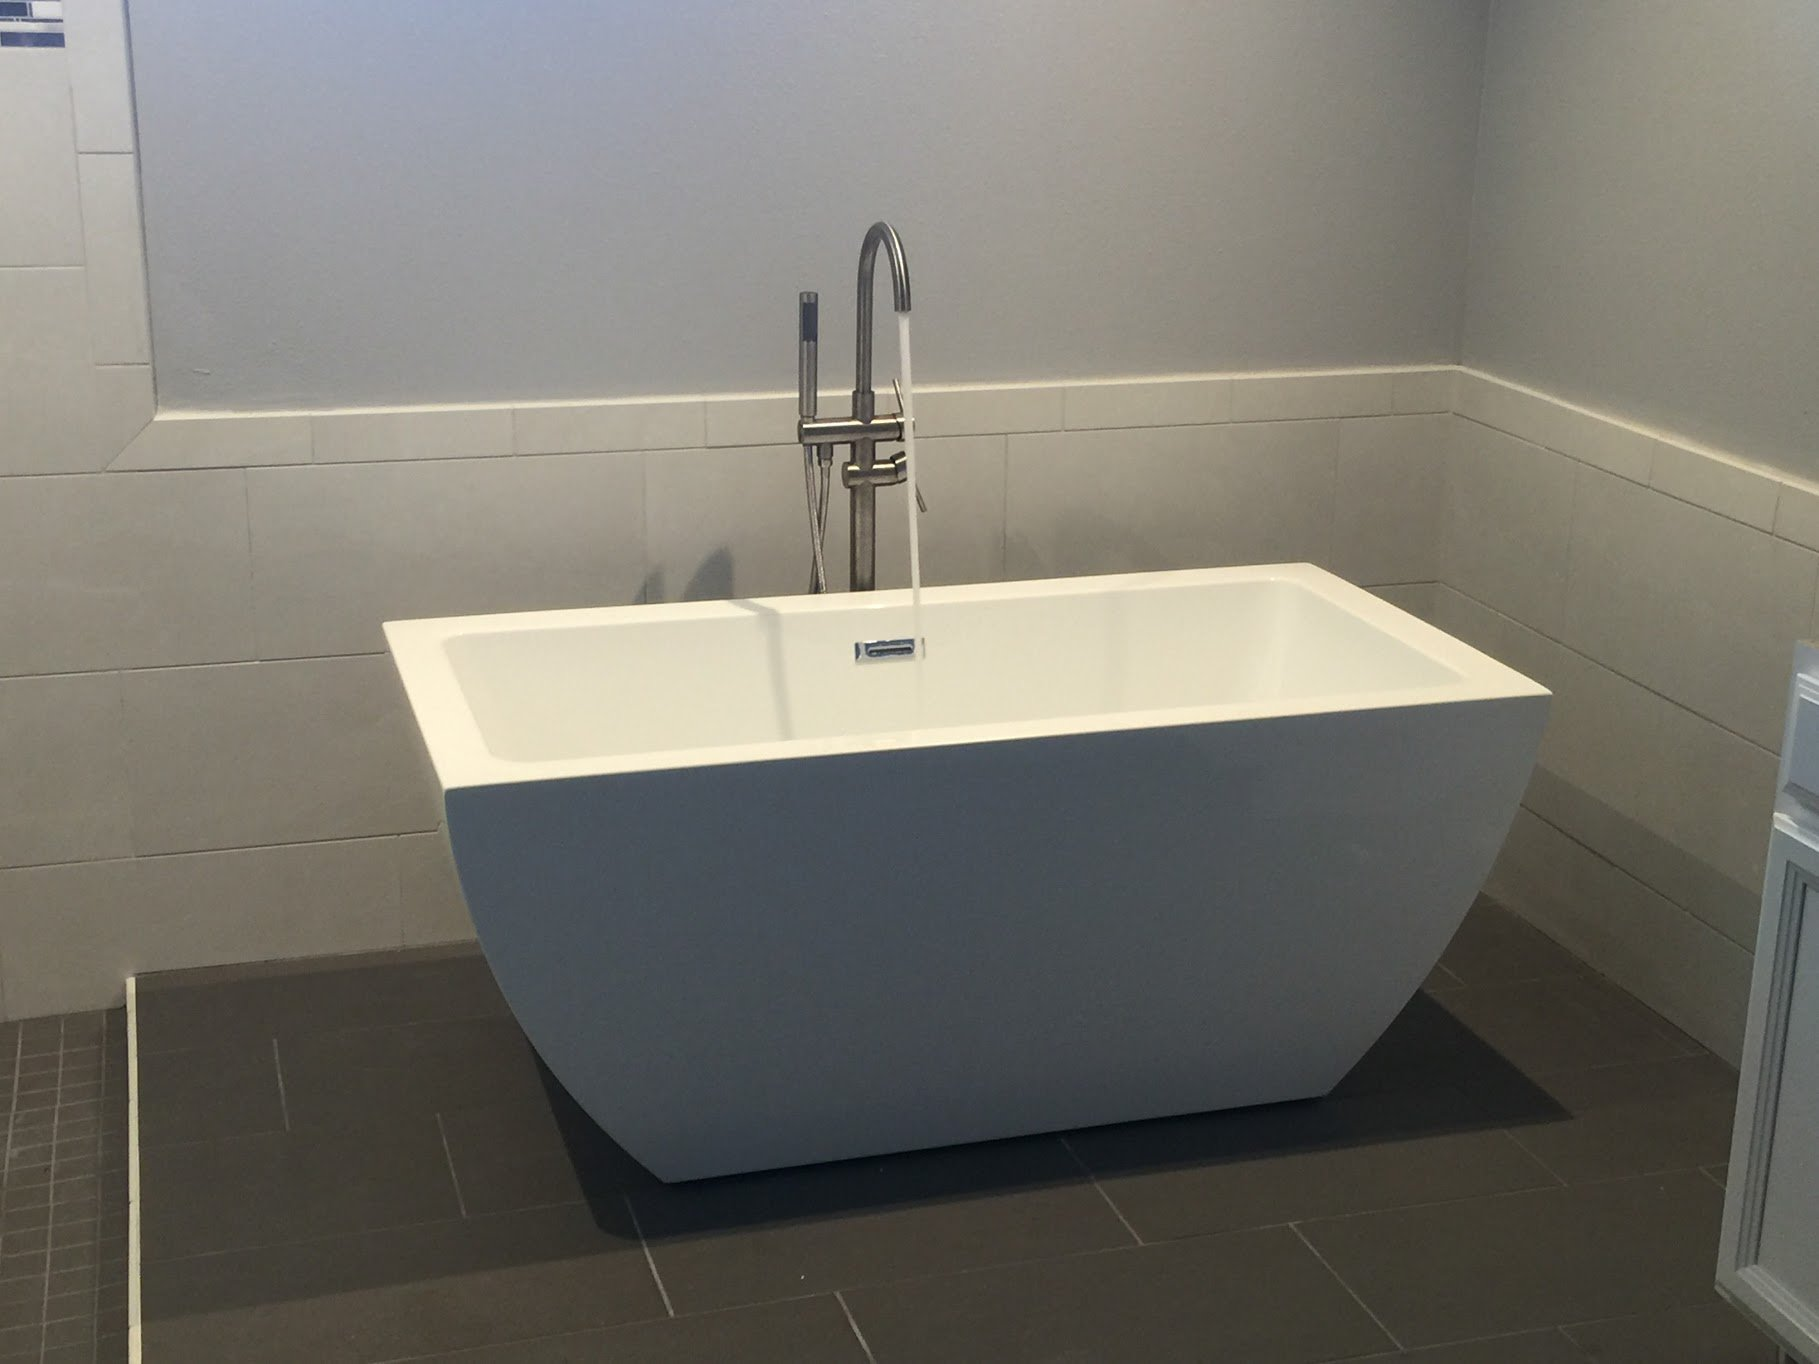 plumber for ocala the villages toilets tubs showers faucets we can install many different types of bathroom and kitchen fixtures we provide installation and repair for handicapped bathrooms such as grab bars for